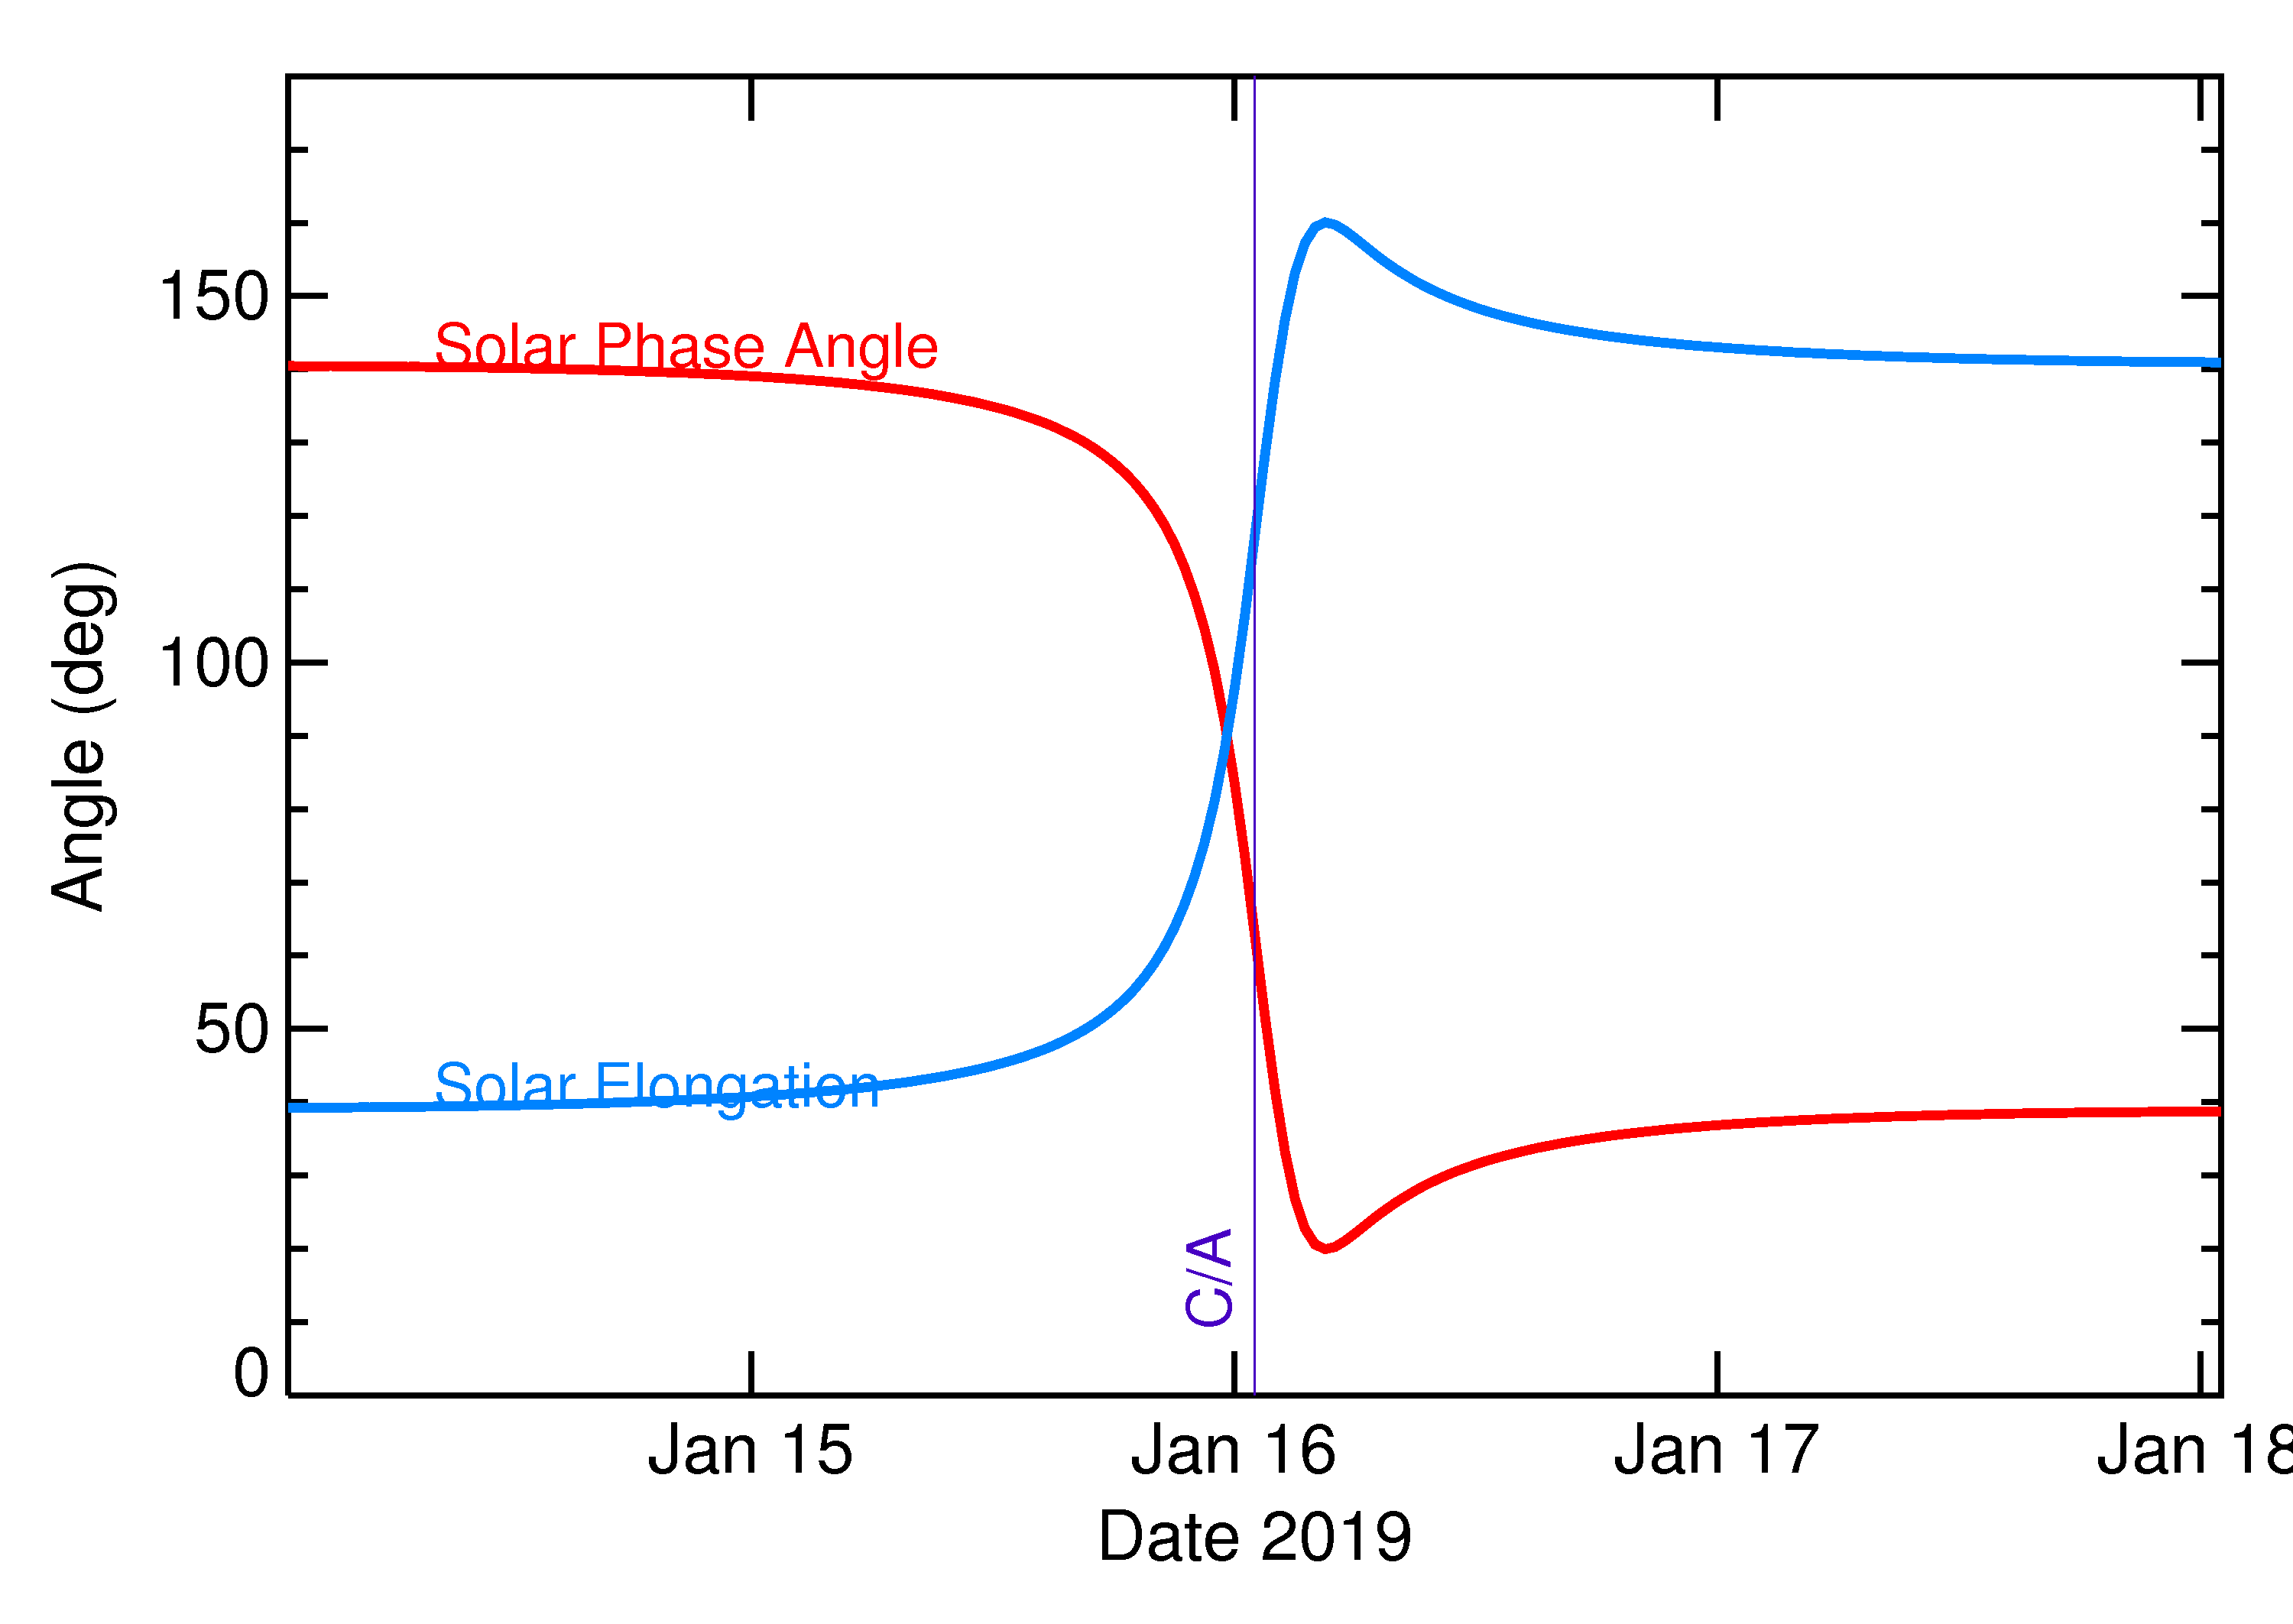 Solar Elongation and Solar Phase Angle of 2019 BO in the days around closest approach